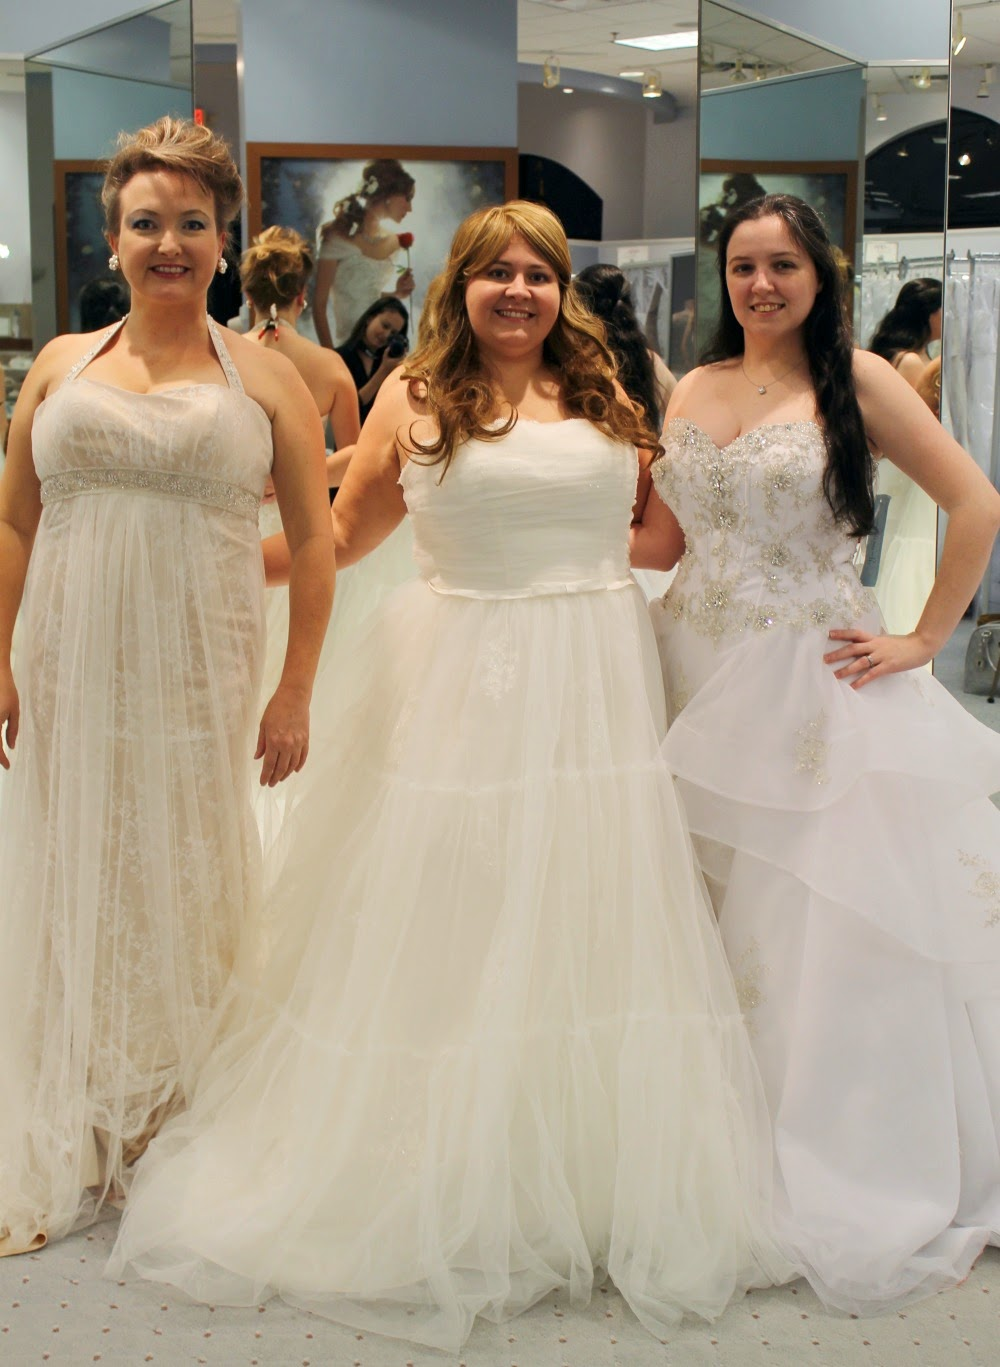 Kelly, Lee, and Tracie in Alfred Angelo wedding gowns.